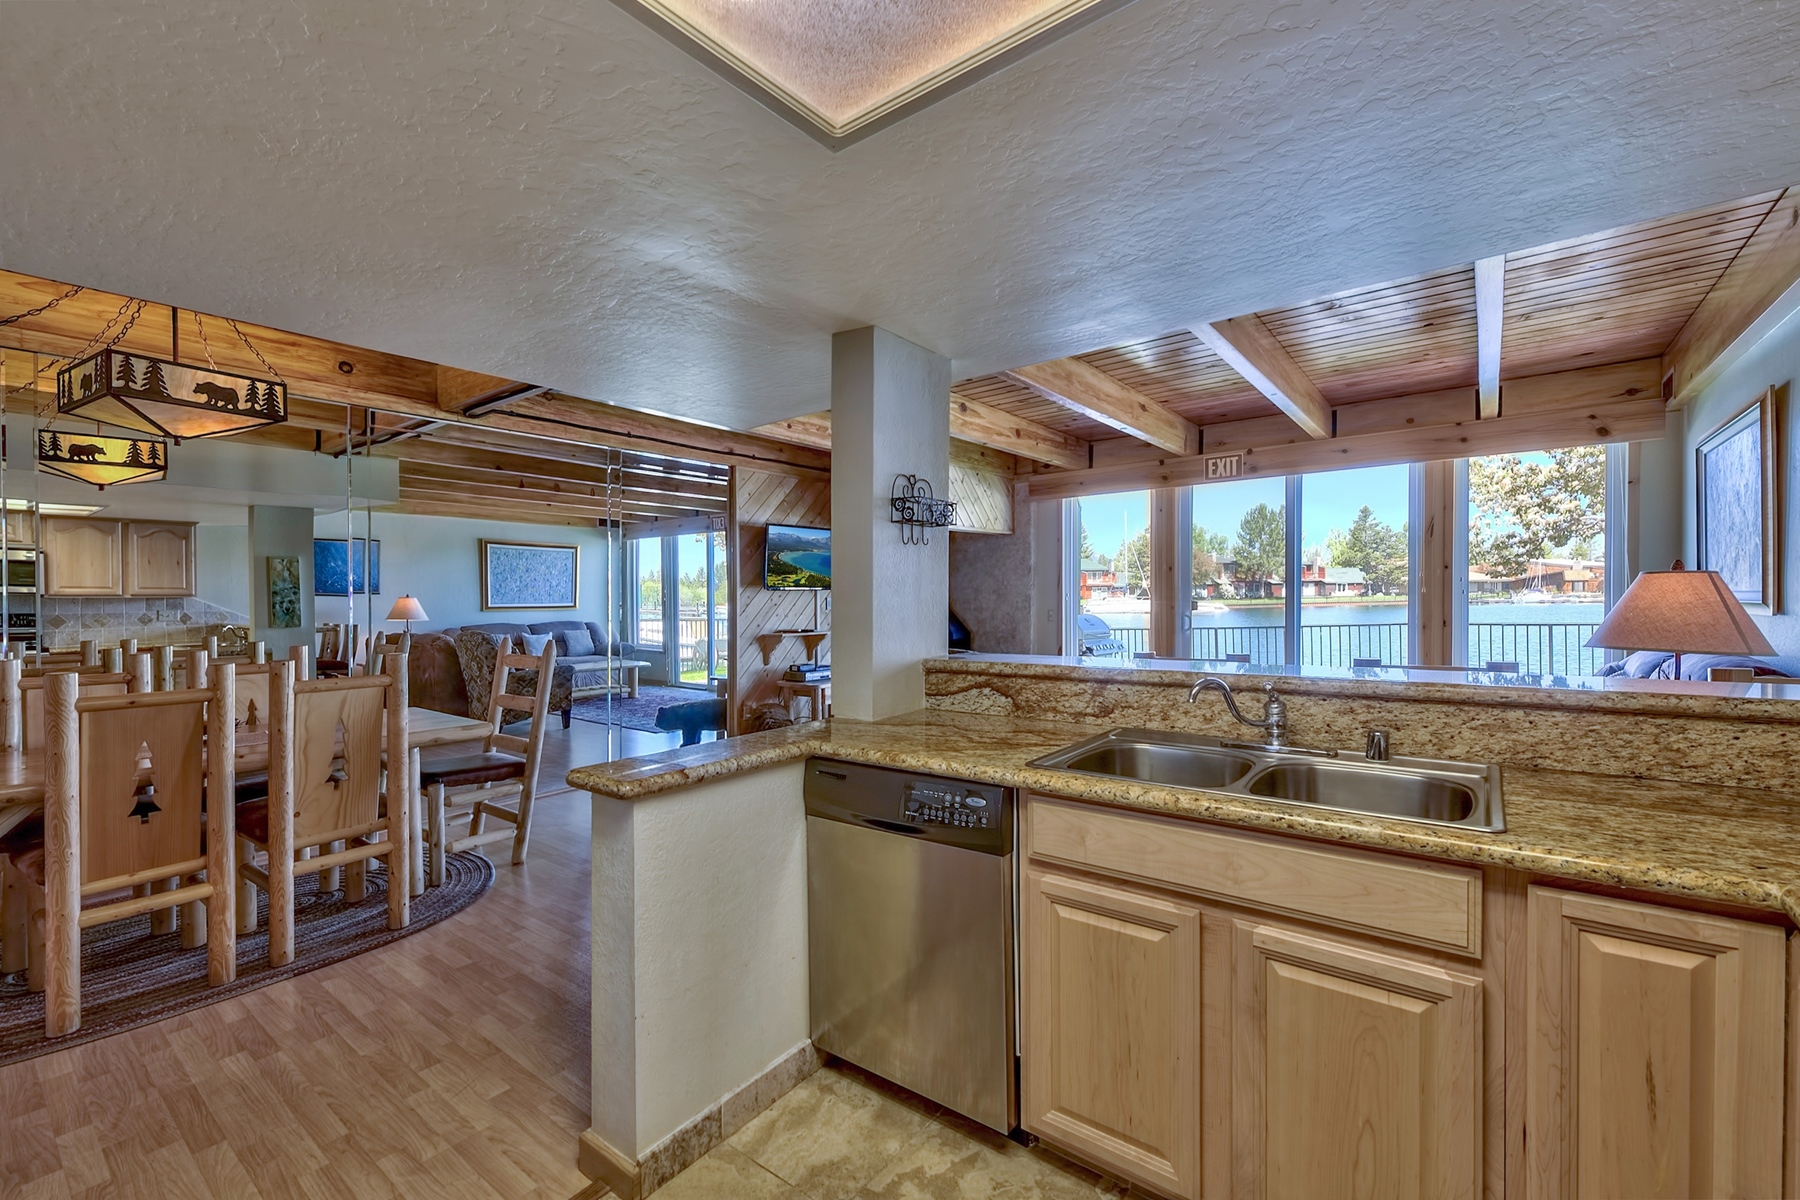 Additional photo for property listing at 439 Ala Wai #135 Blvd, South Lake Tahoe CA 96150 439 Ala Wai #135 Blvd South Lake Tahoe, California 96150 United States